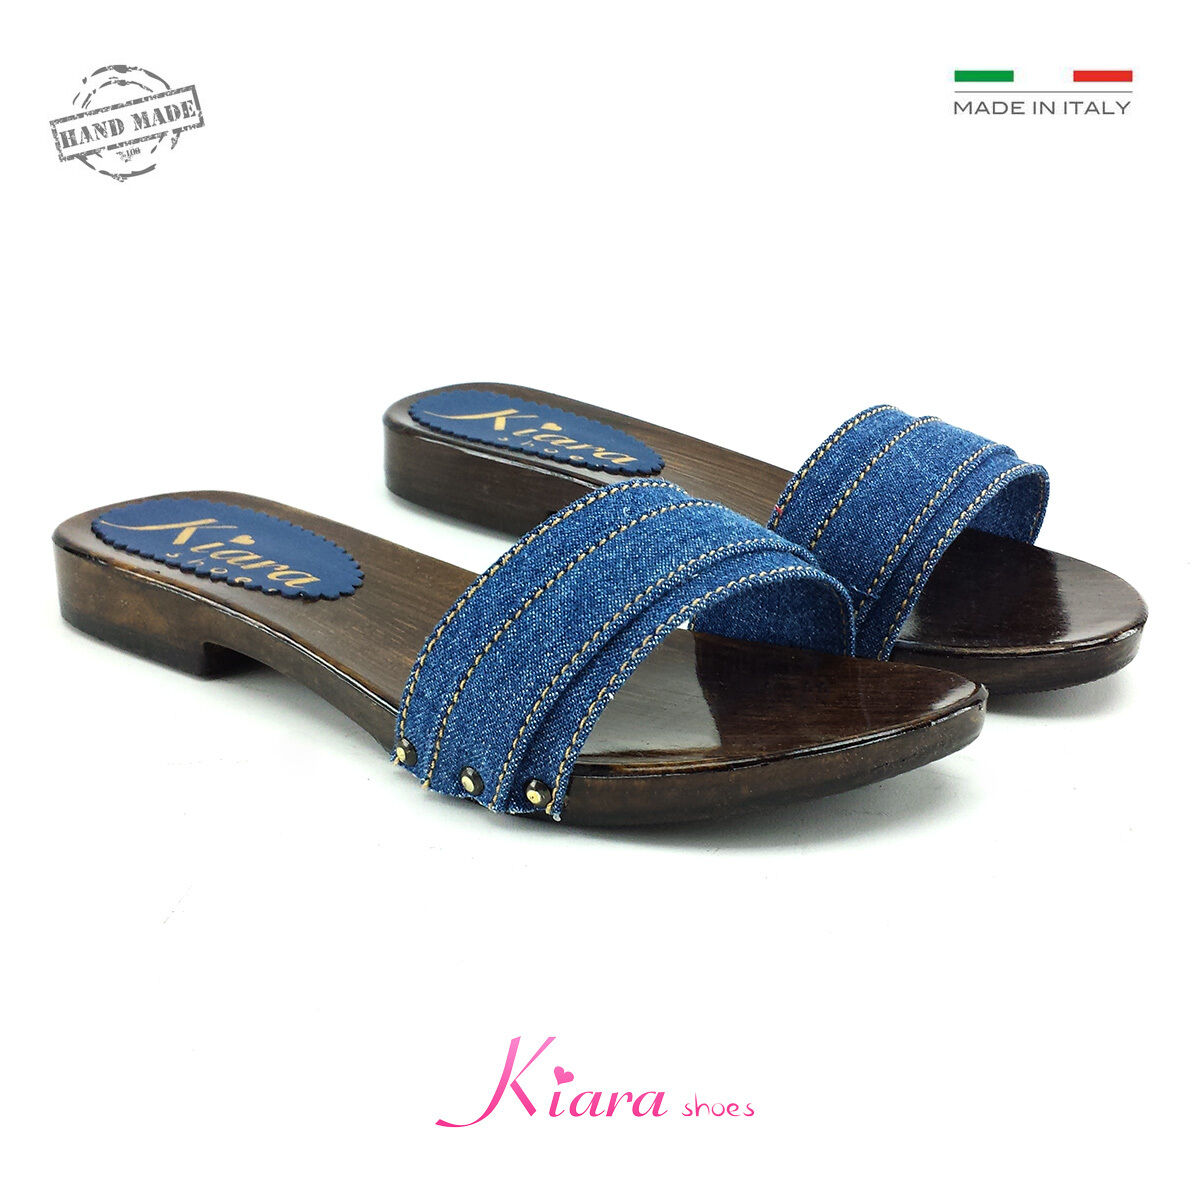 Zoccoli Bassi Denim - chaussures Made in  35-36-37-38-39-40-41-42 - Tacco 2 cm